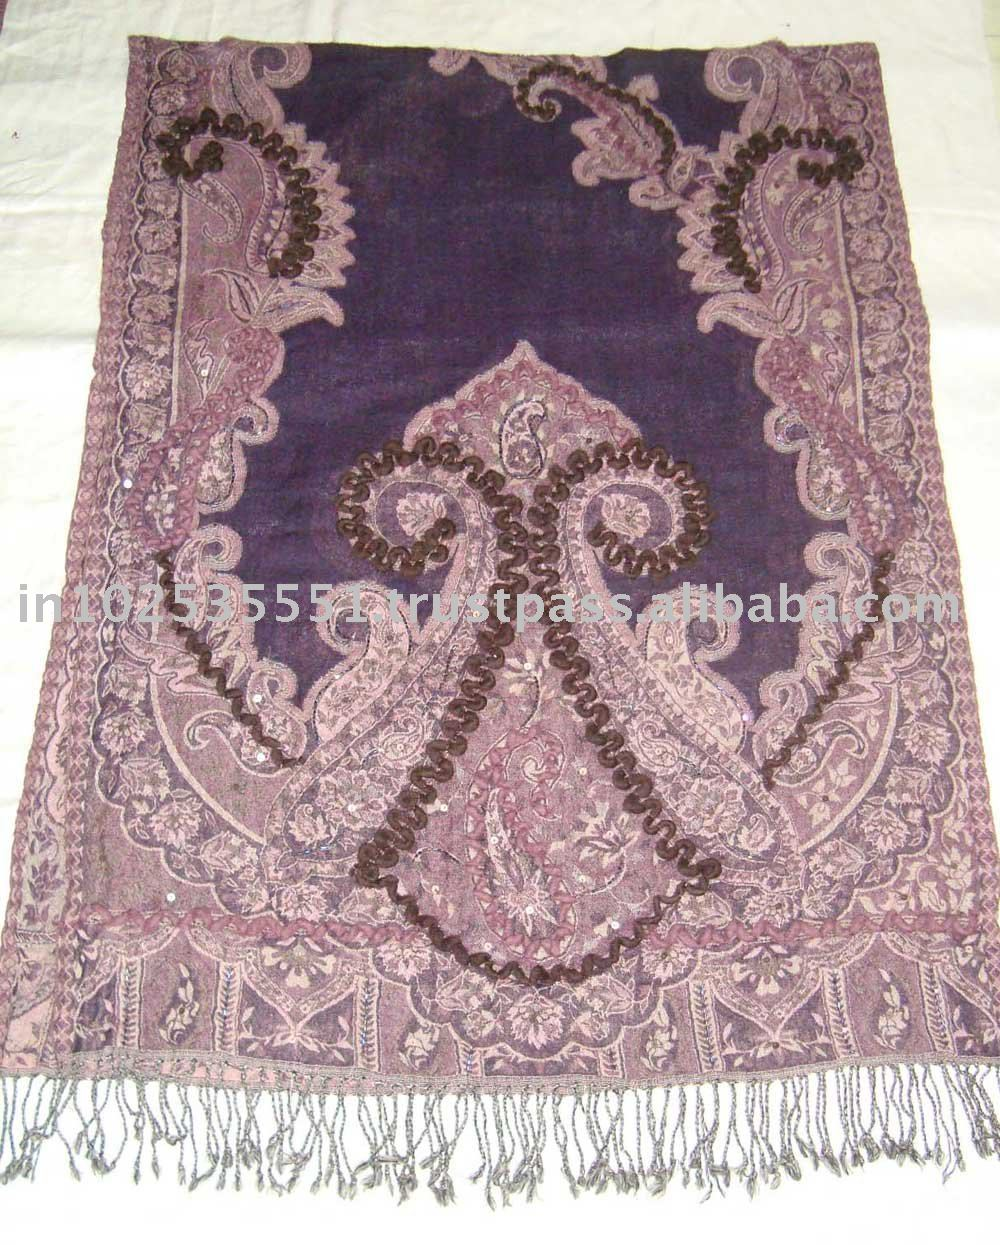 100% Wool Pashmina cutting shawl with fancy wool embroidery